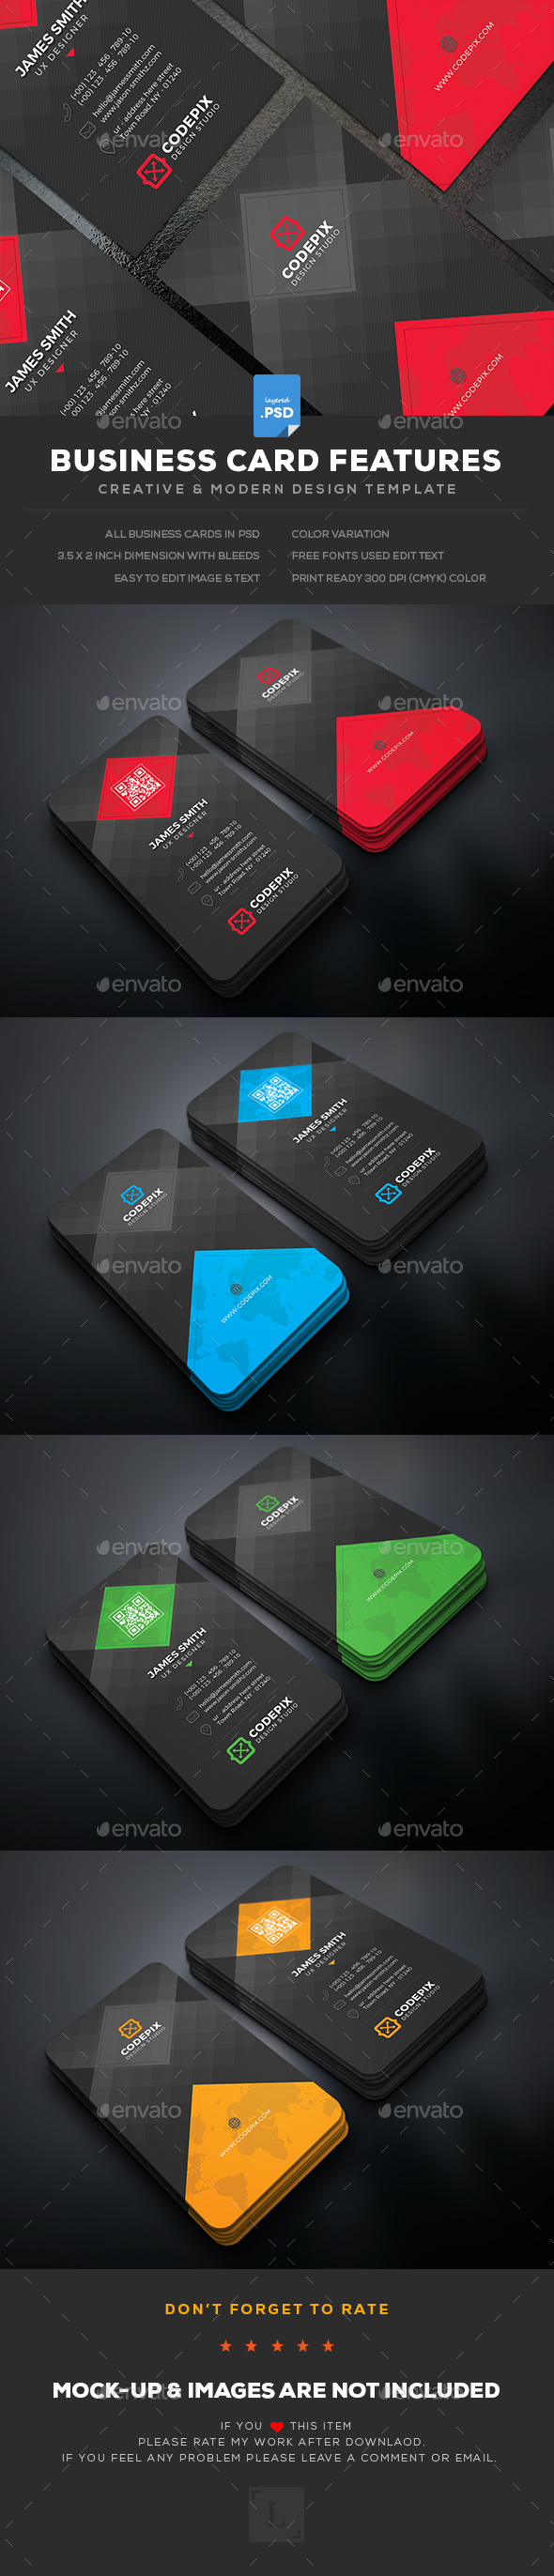 Business Card Design Template - Business Cards Design Print Template PSD. Download here: https://graphicriver.net/item/business-card/19425058?ref=yinkira